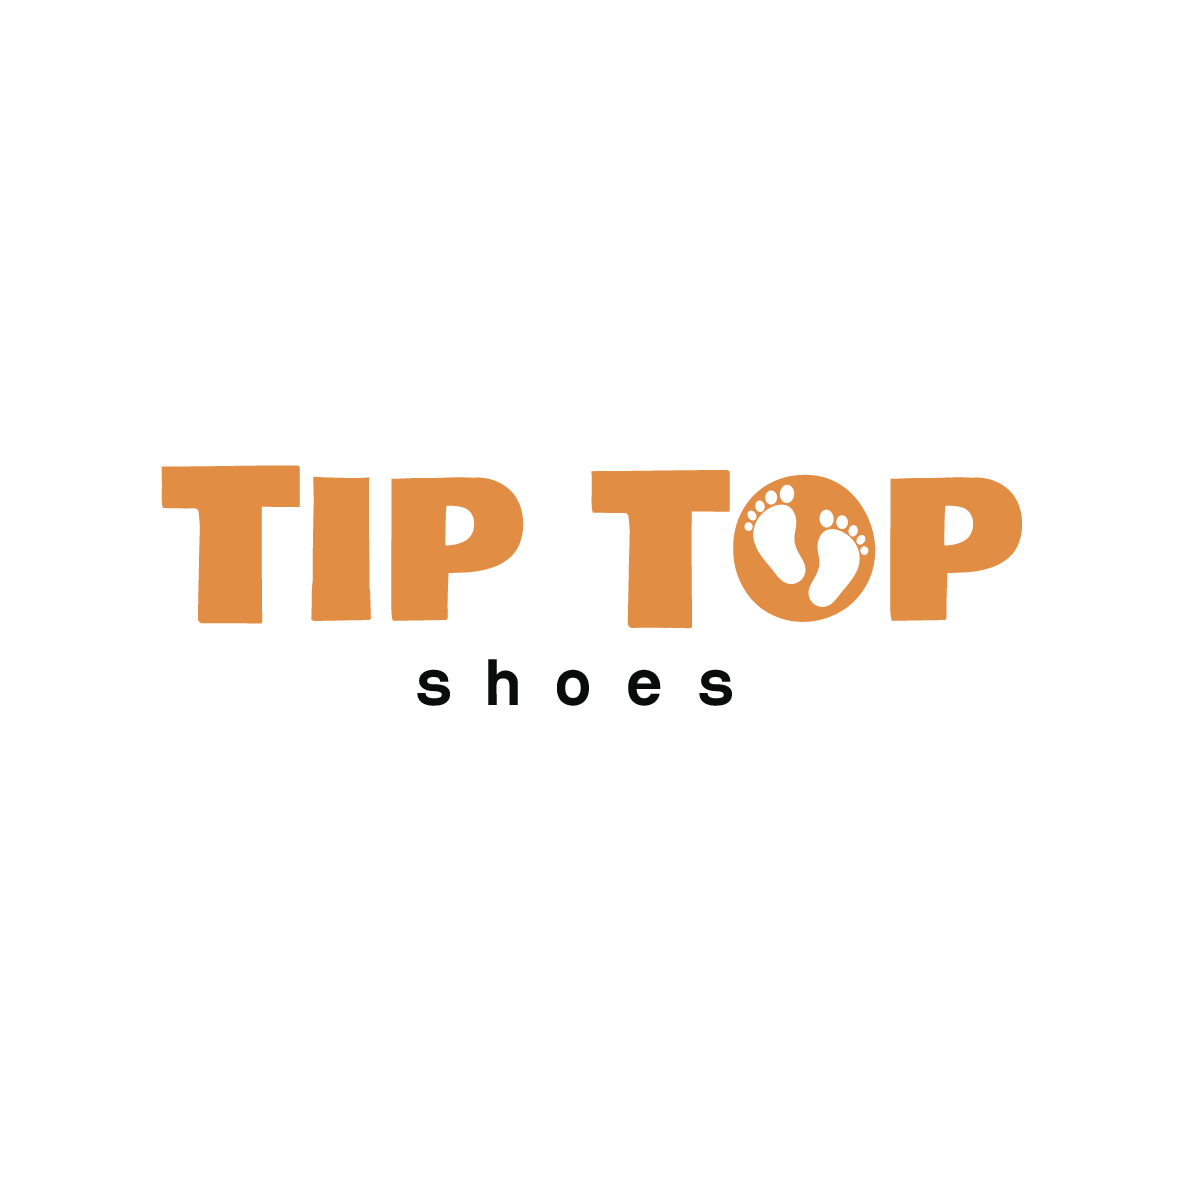 TipTop Shoes